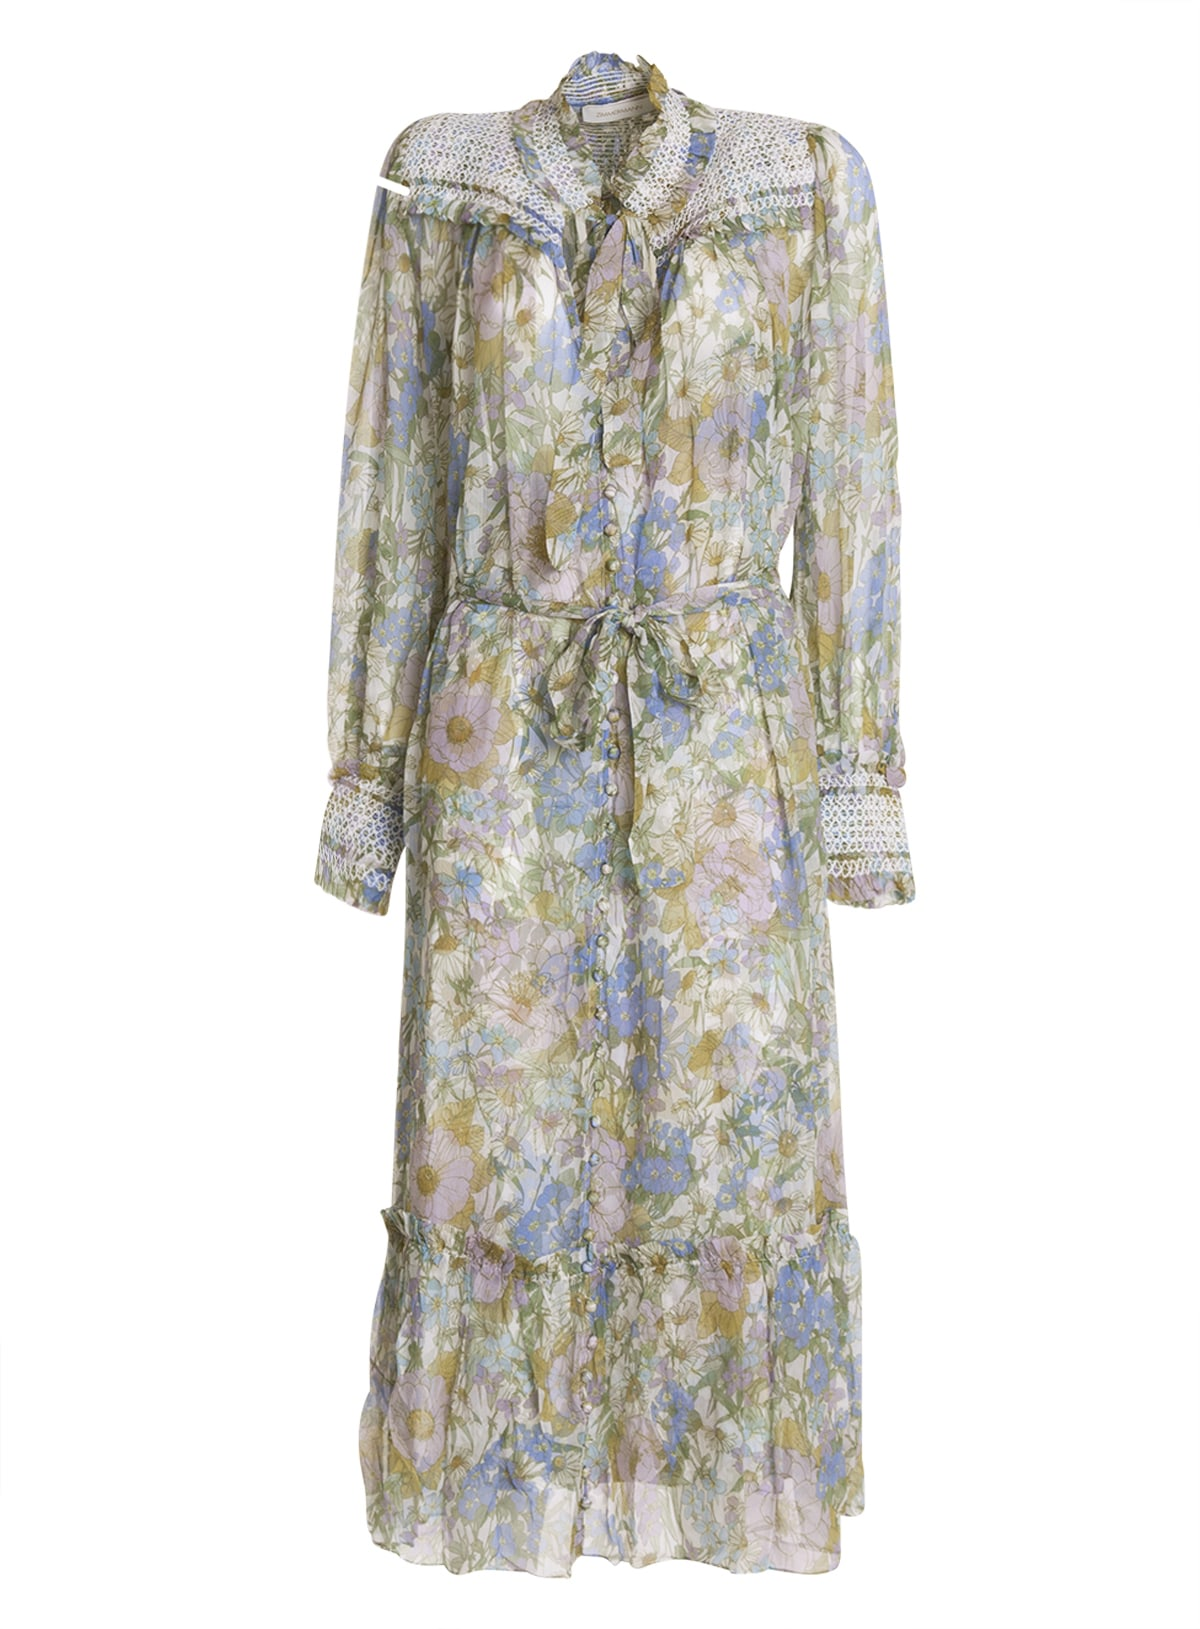 Buy Zimmermann Floral Patterned Midi Dress online, shop Zimmermann with free shipping